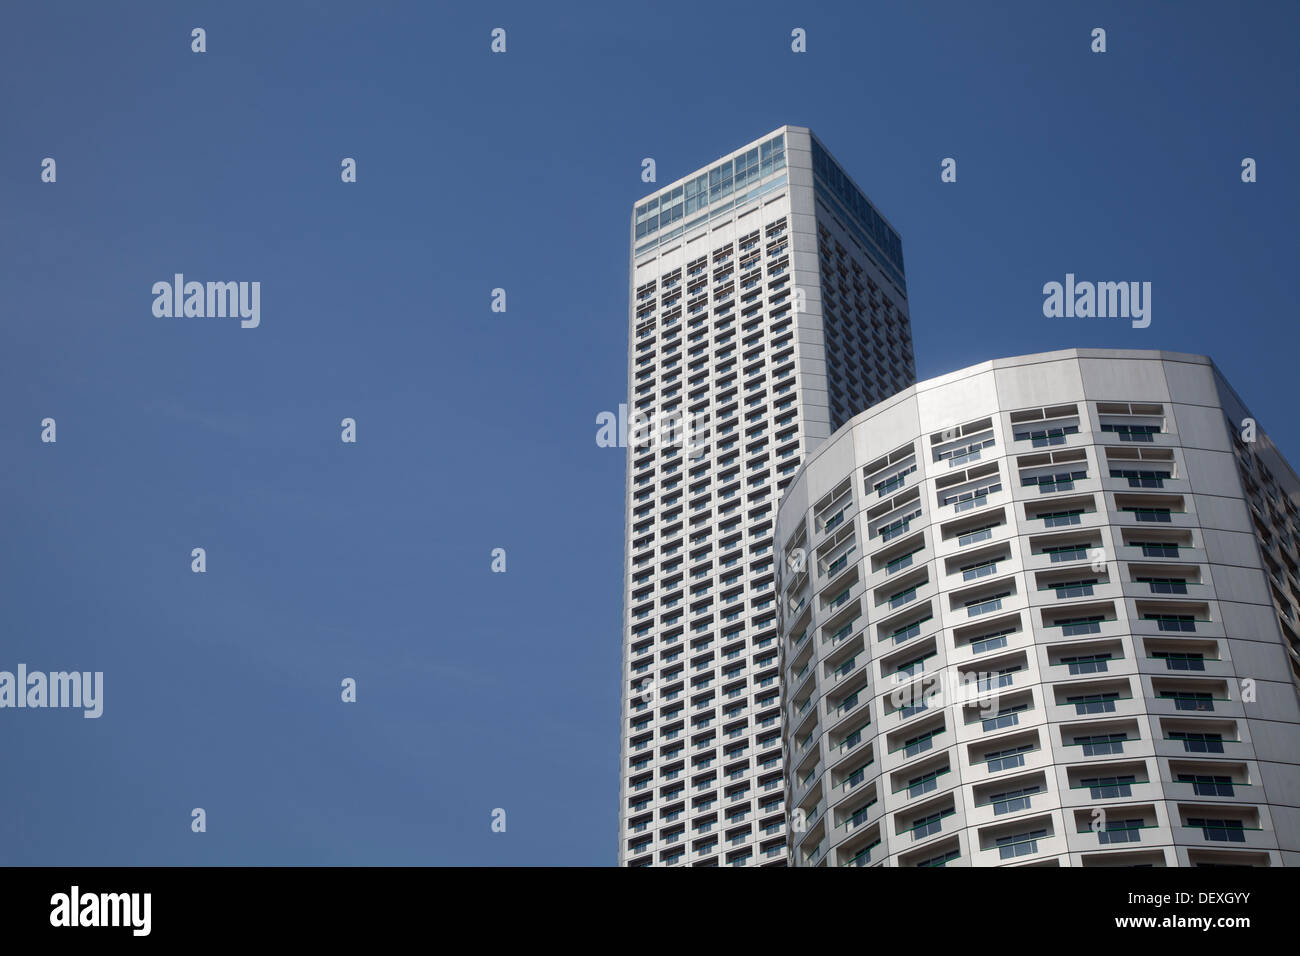 Skyscrapers Singapore sky two buildings Asia blue power modern architecture contemporary gray bold financial offices tower hotel - Stock Image